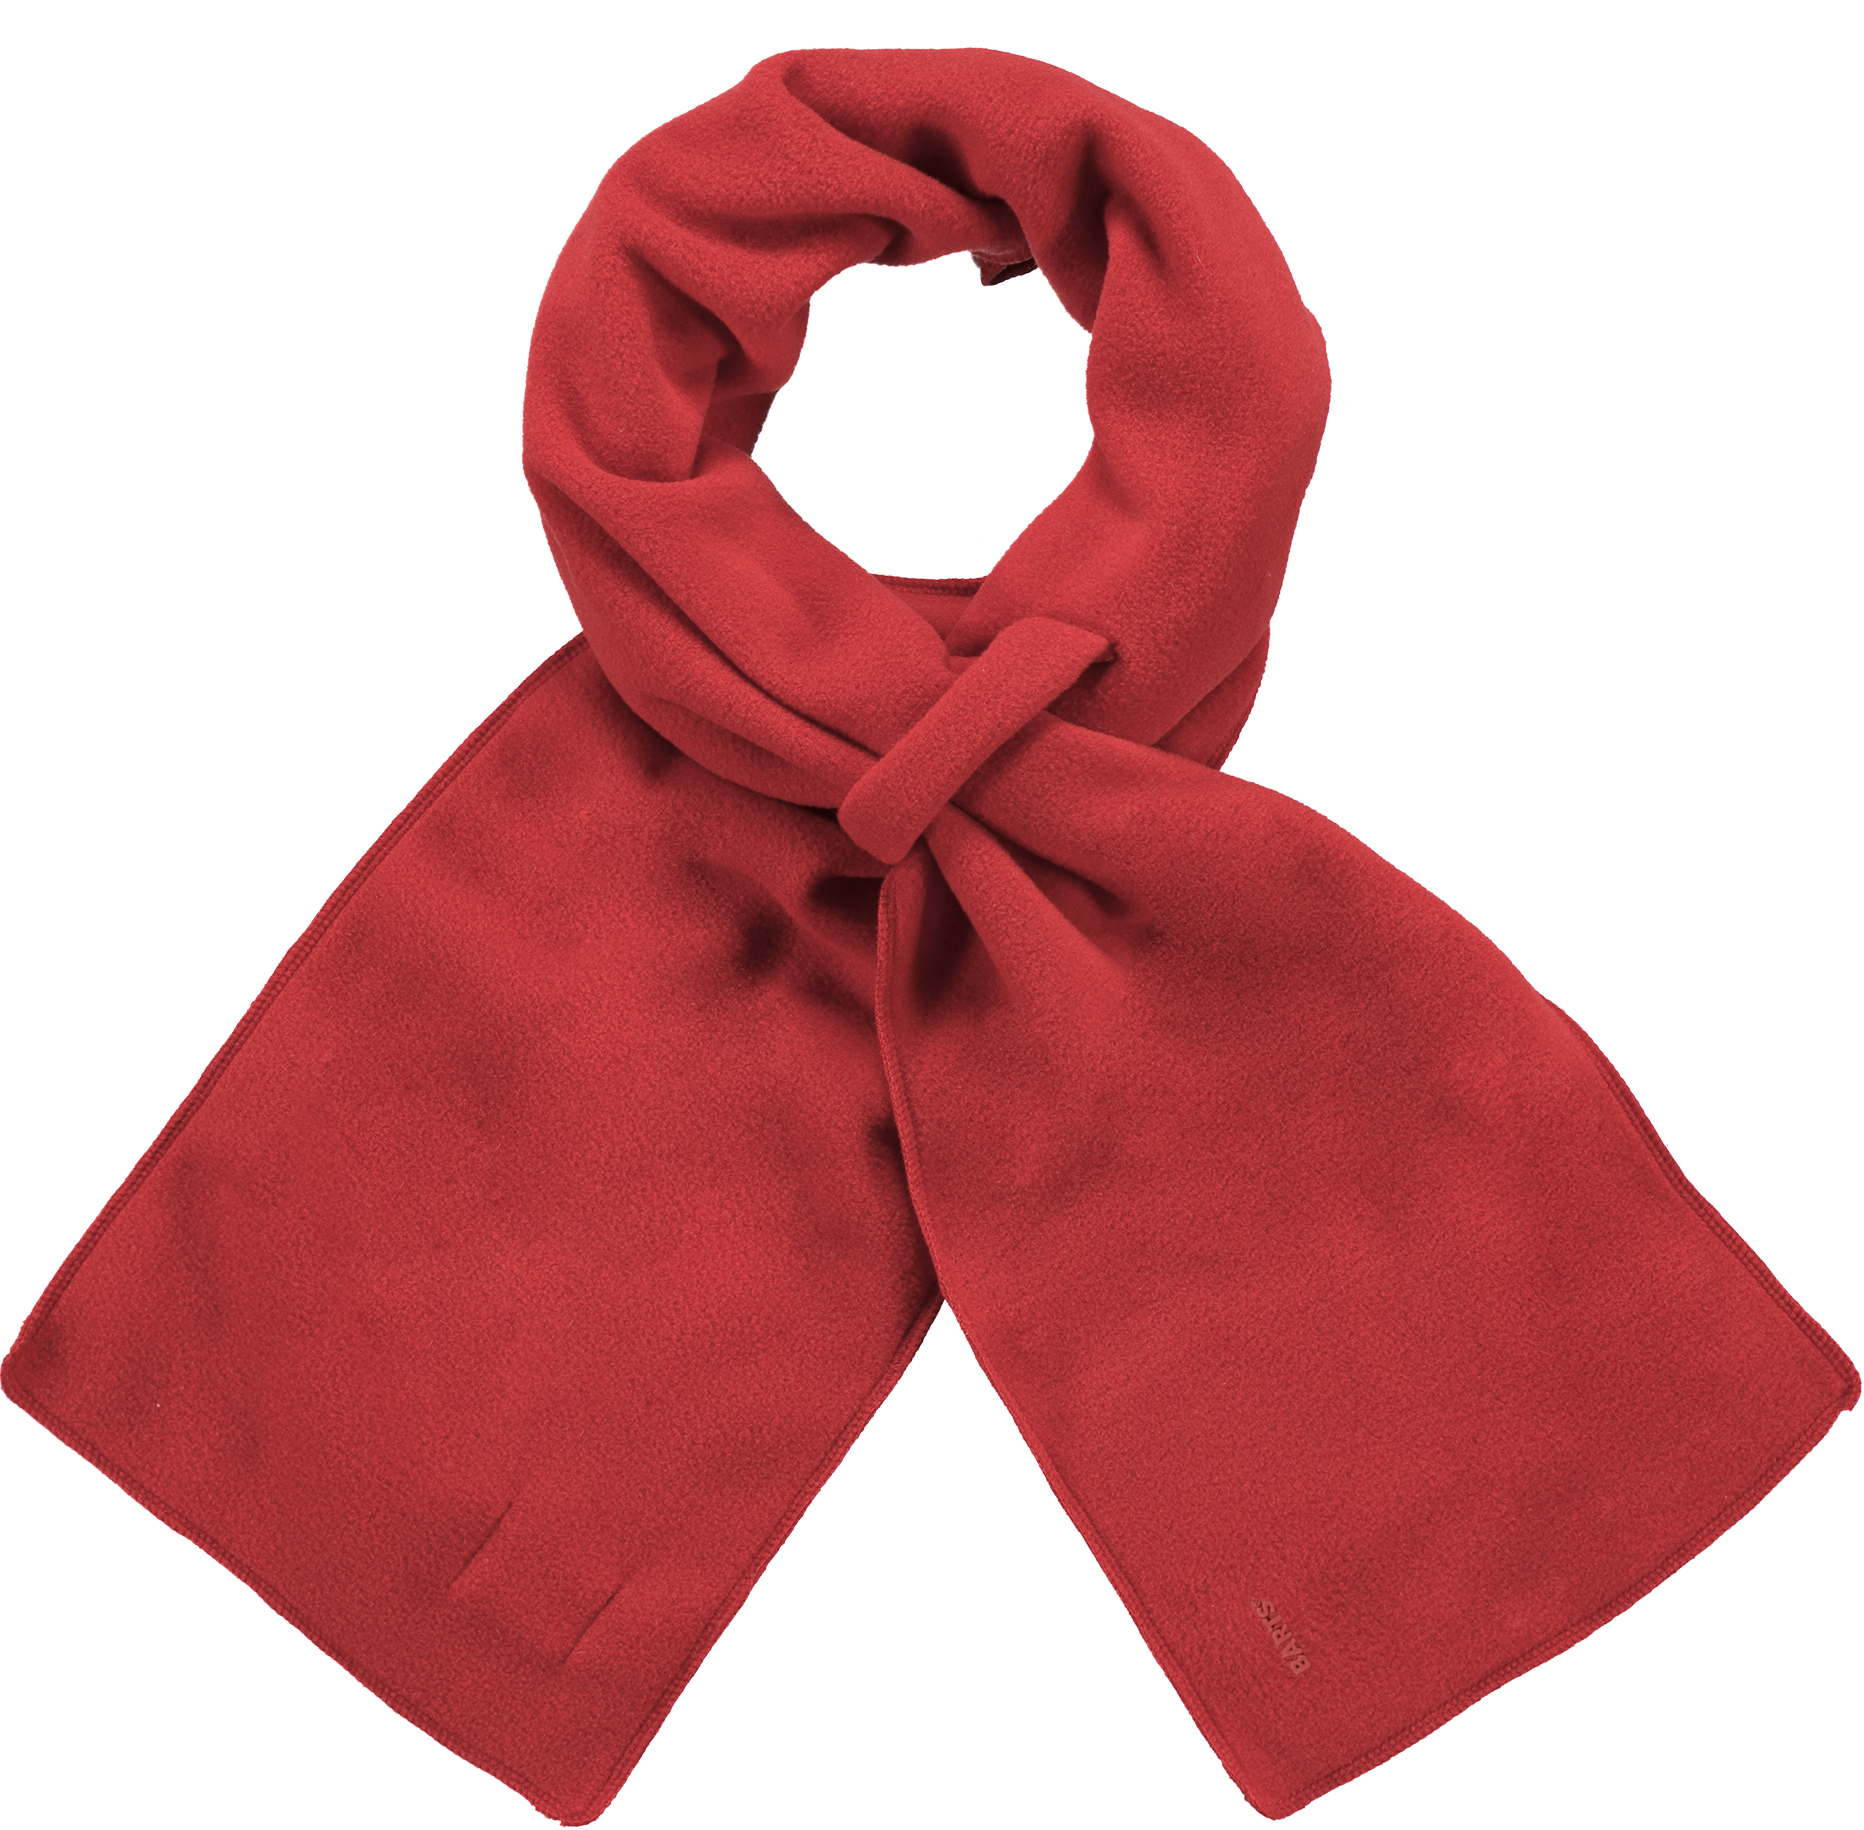 K's Fleece Shawl - Red